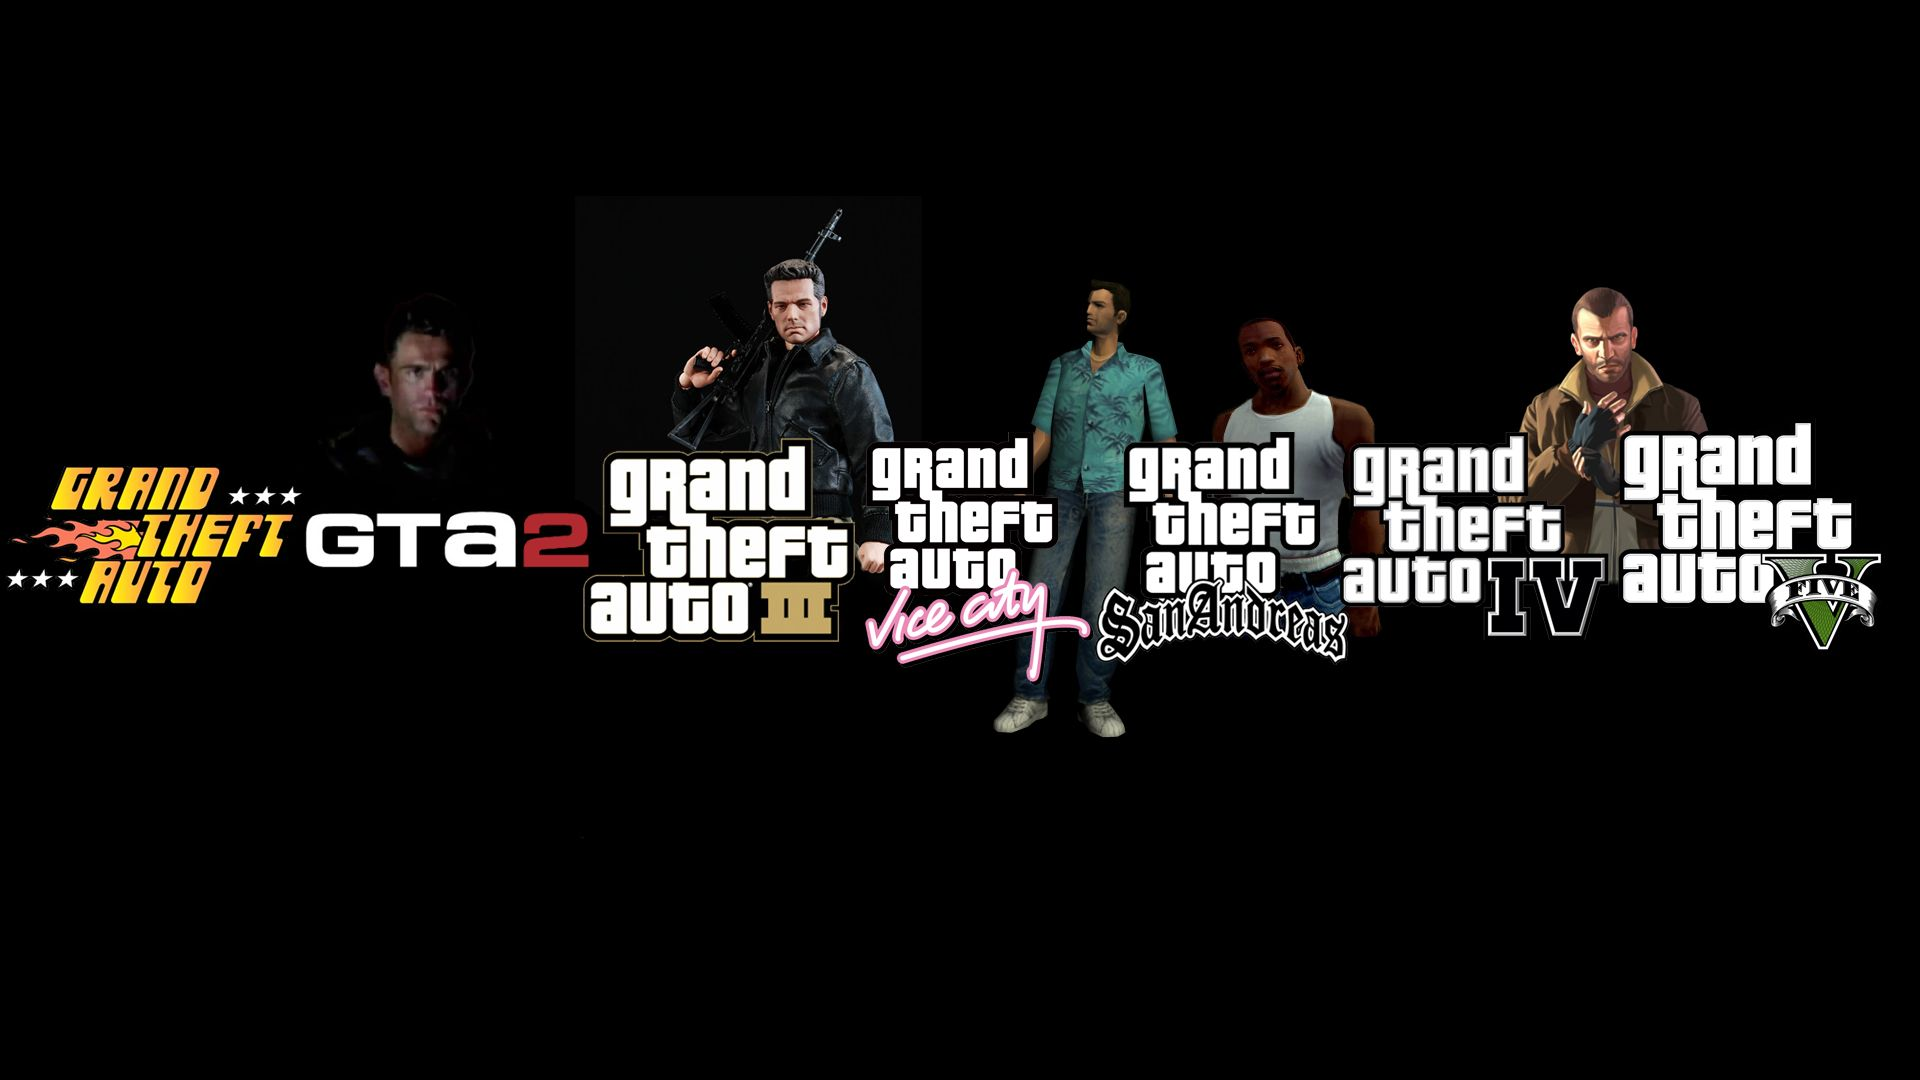 GTA 5 HD Wide Wallpapers for Your Desktop TechBeasts 1920x1080